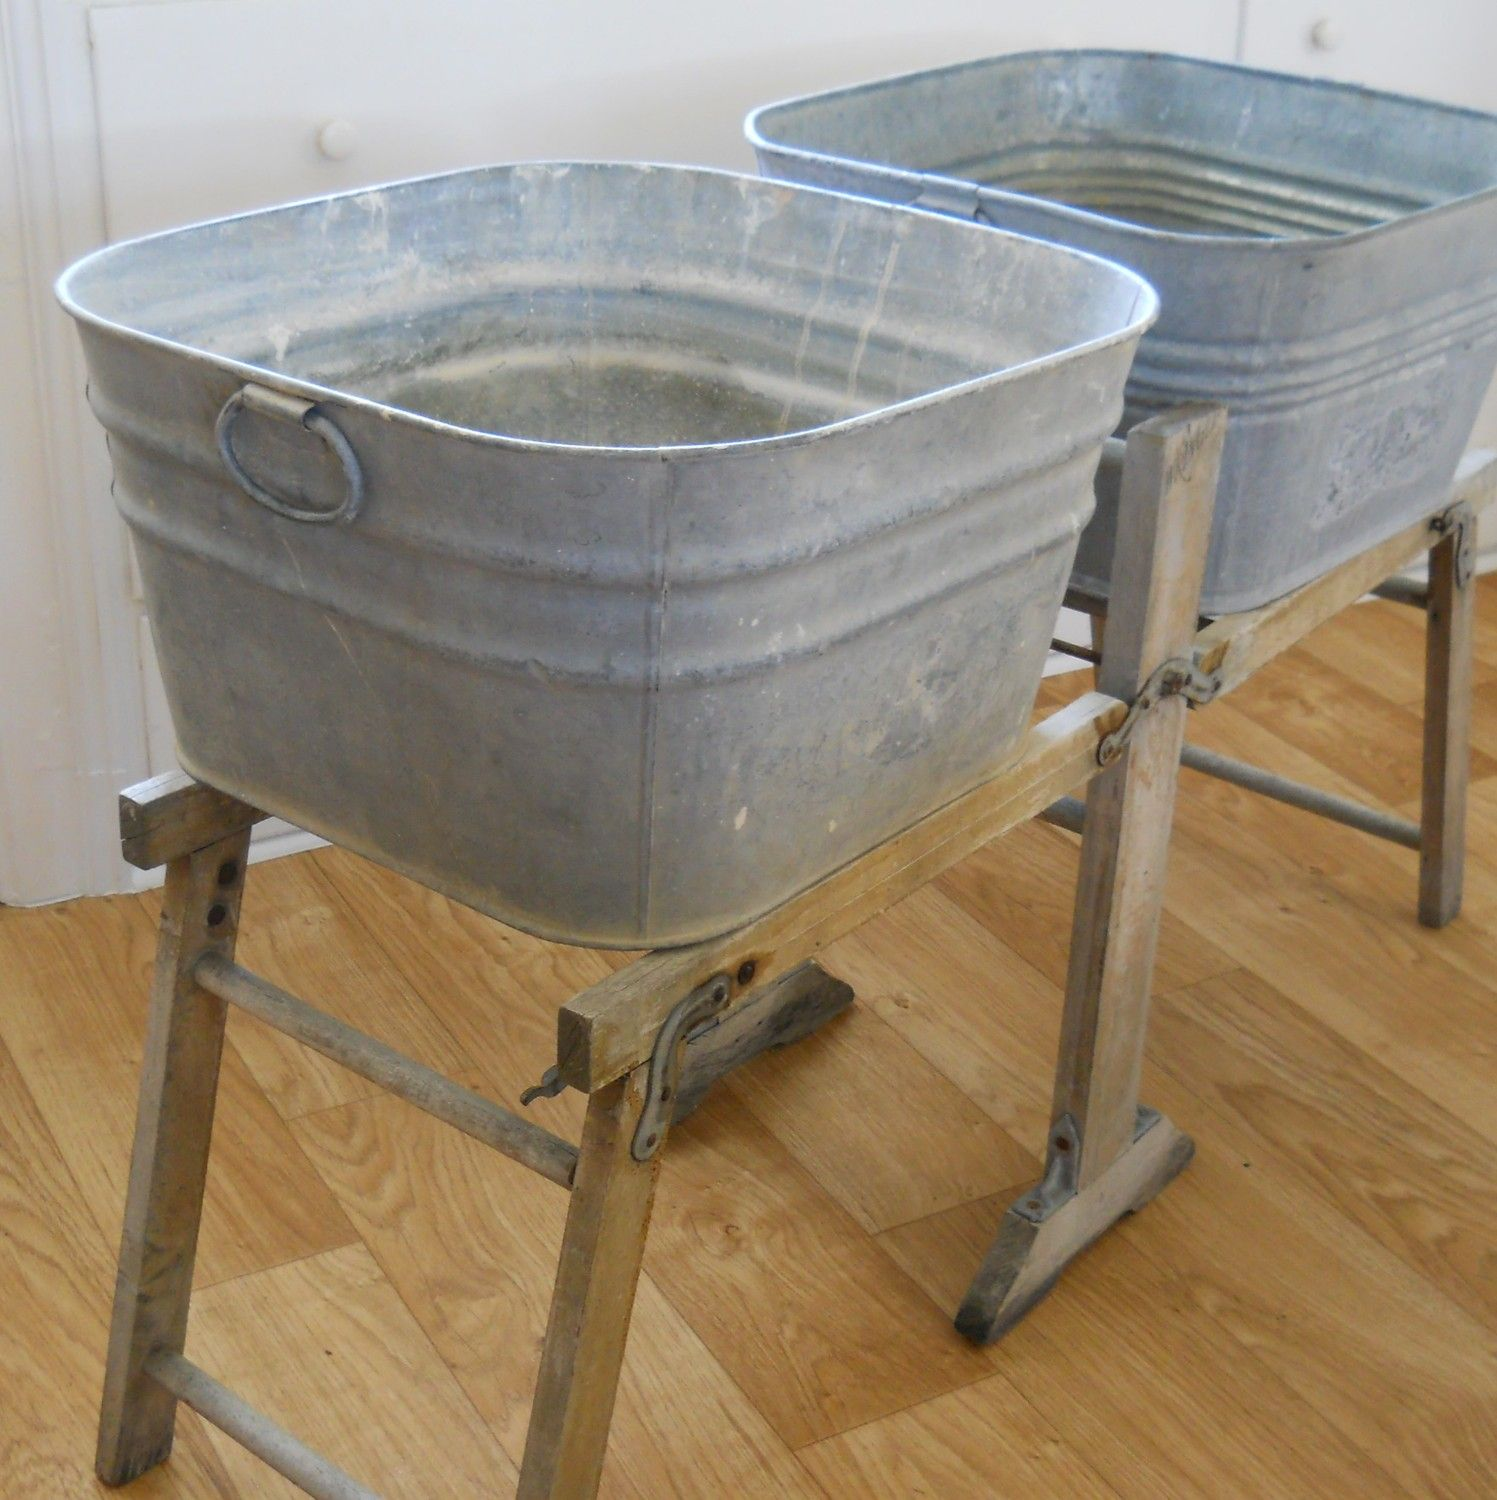 stand beer cooler by galvanized tub fullxfull wheeling theoldgrainery sold flower plant listing pot with il single wash